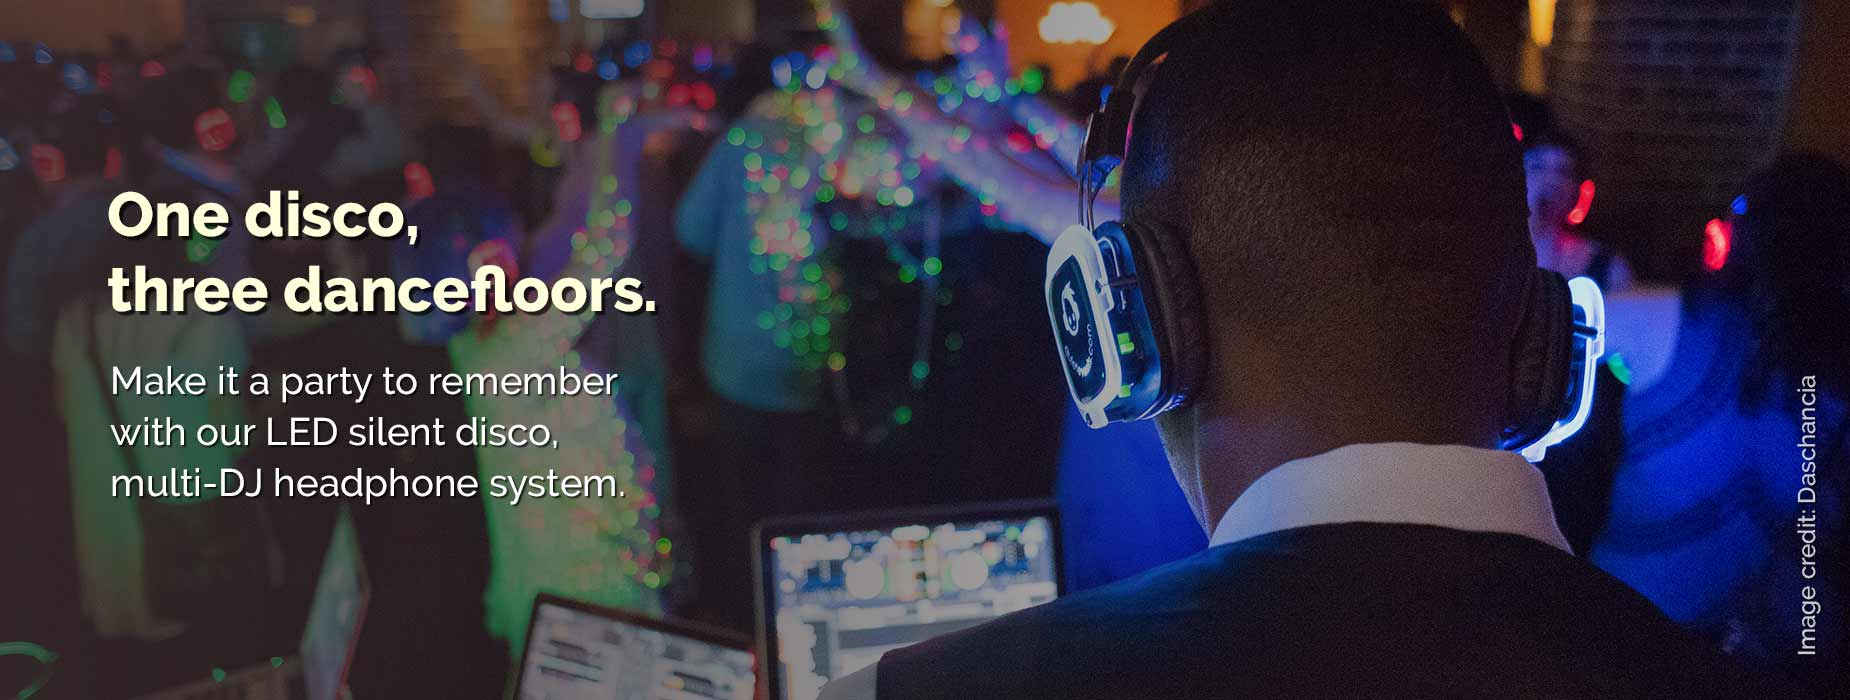 Silent disco headphones available to hire from Place Over Ears